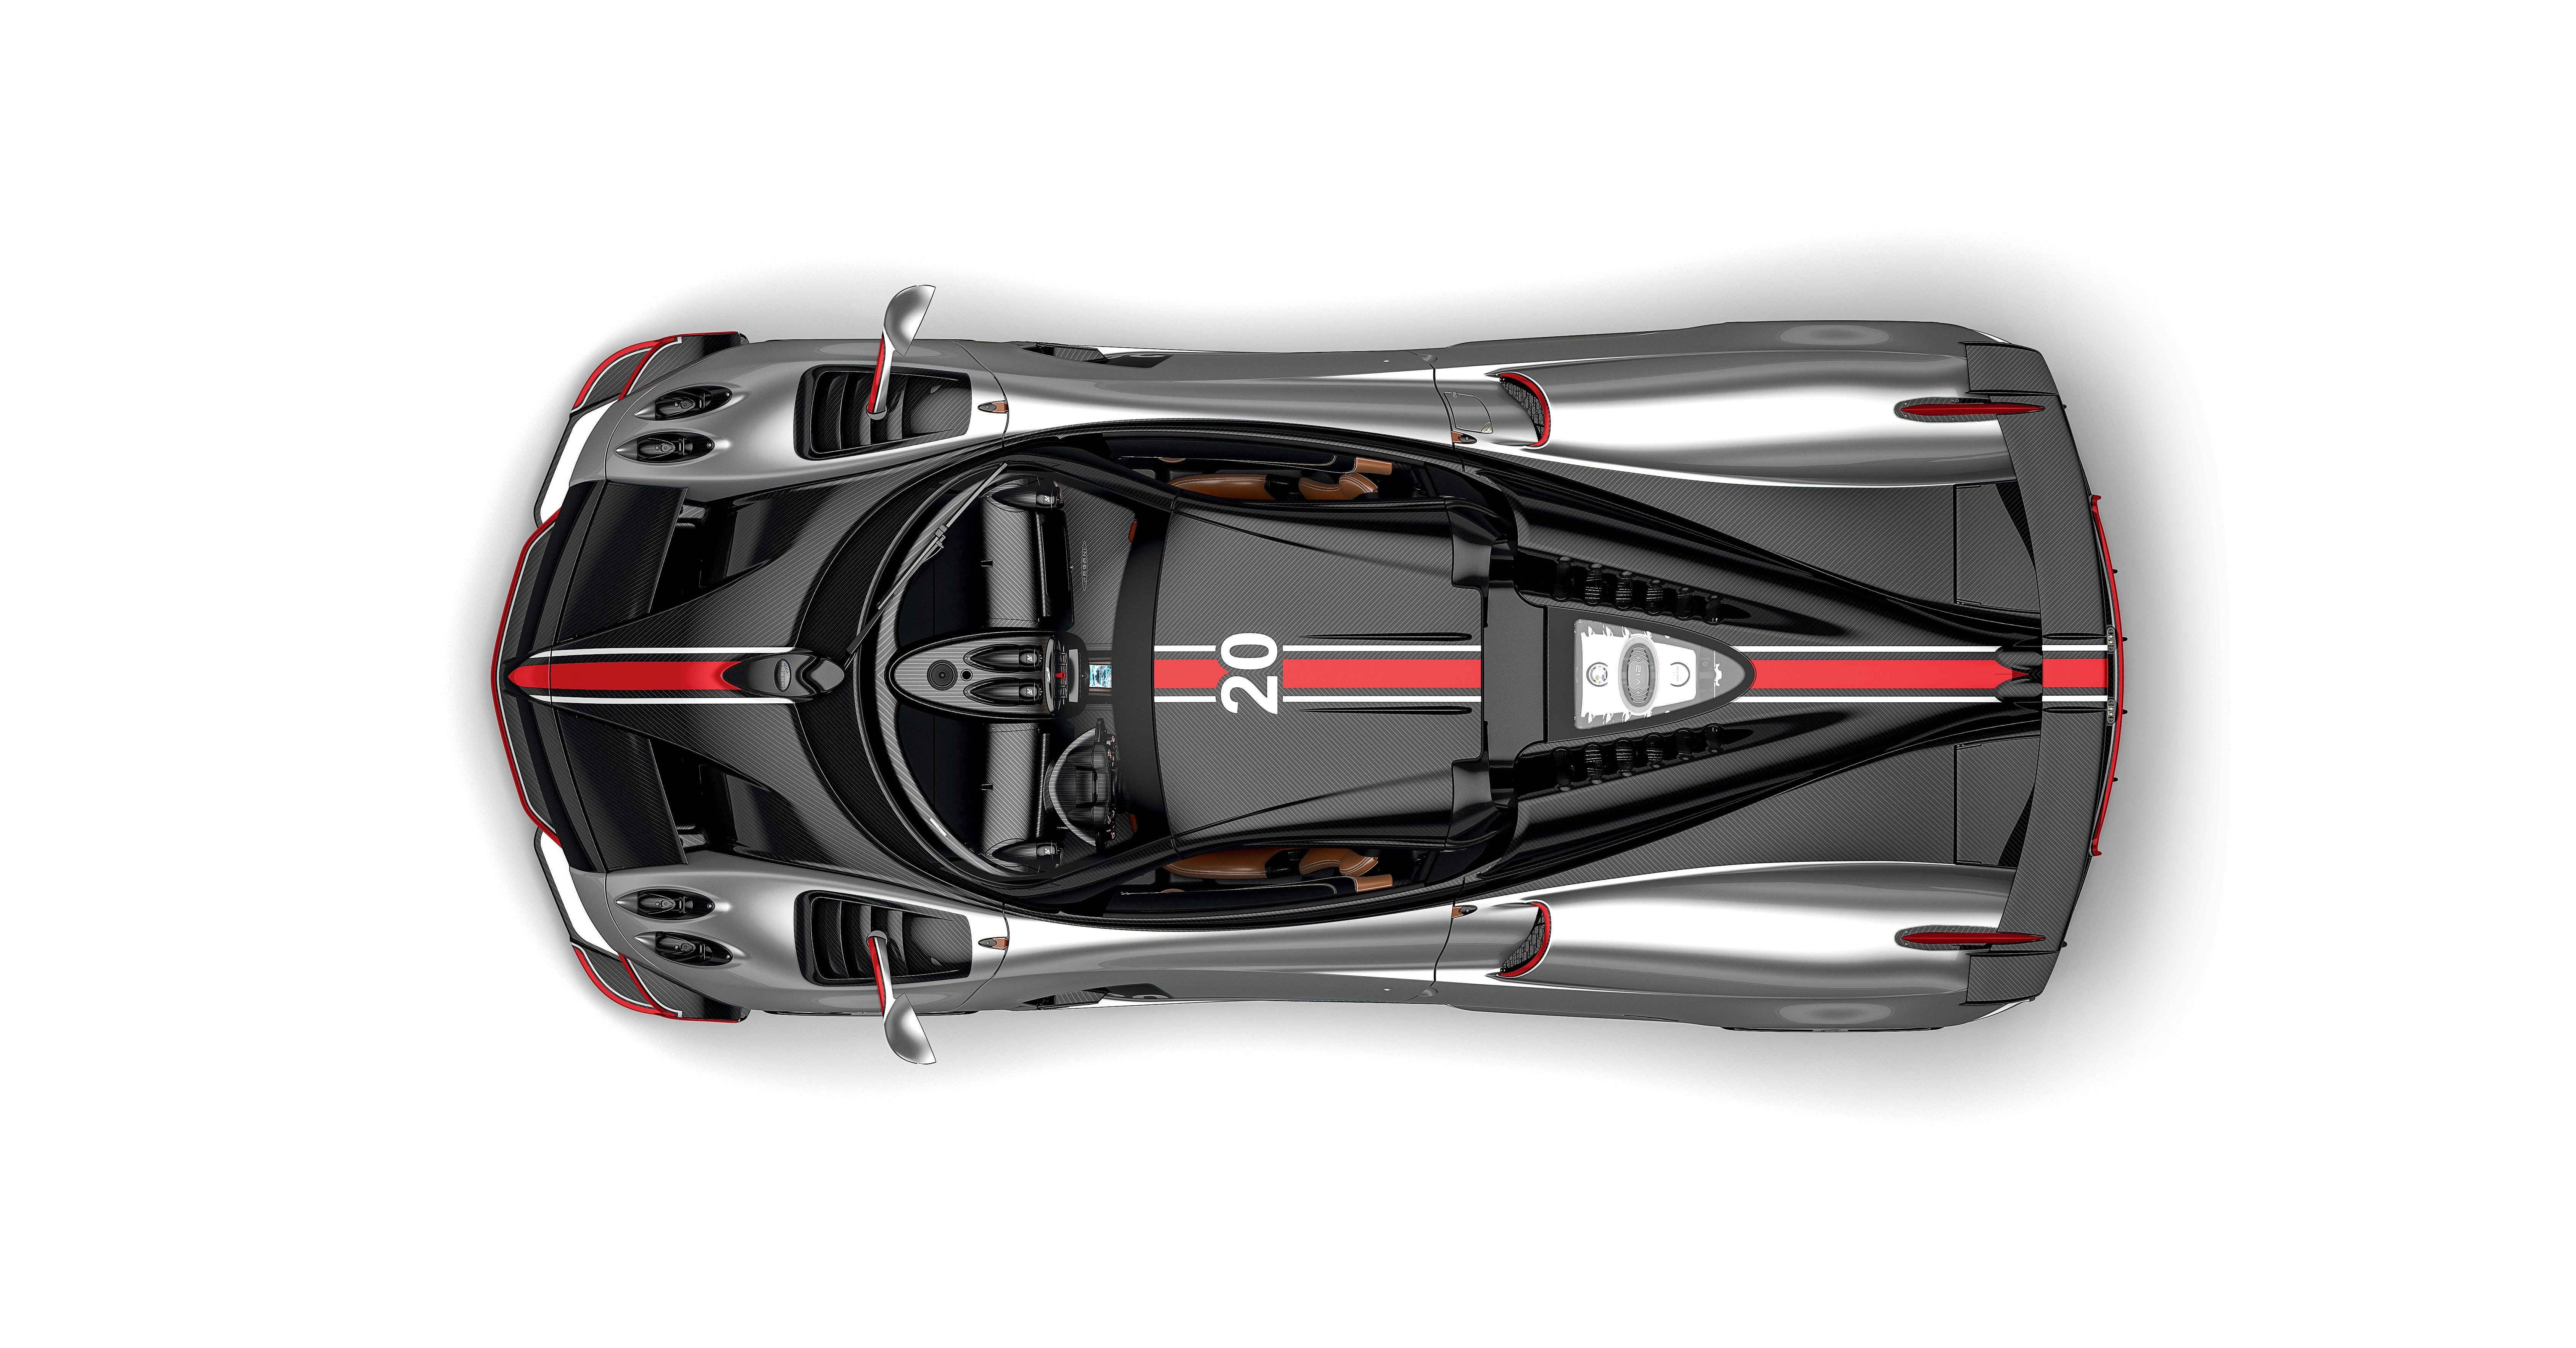 The HK$30 million Pagani Huayra is the latest version of Mark Zuckerberg's supercar – and is more than twice the price